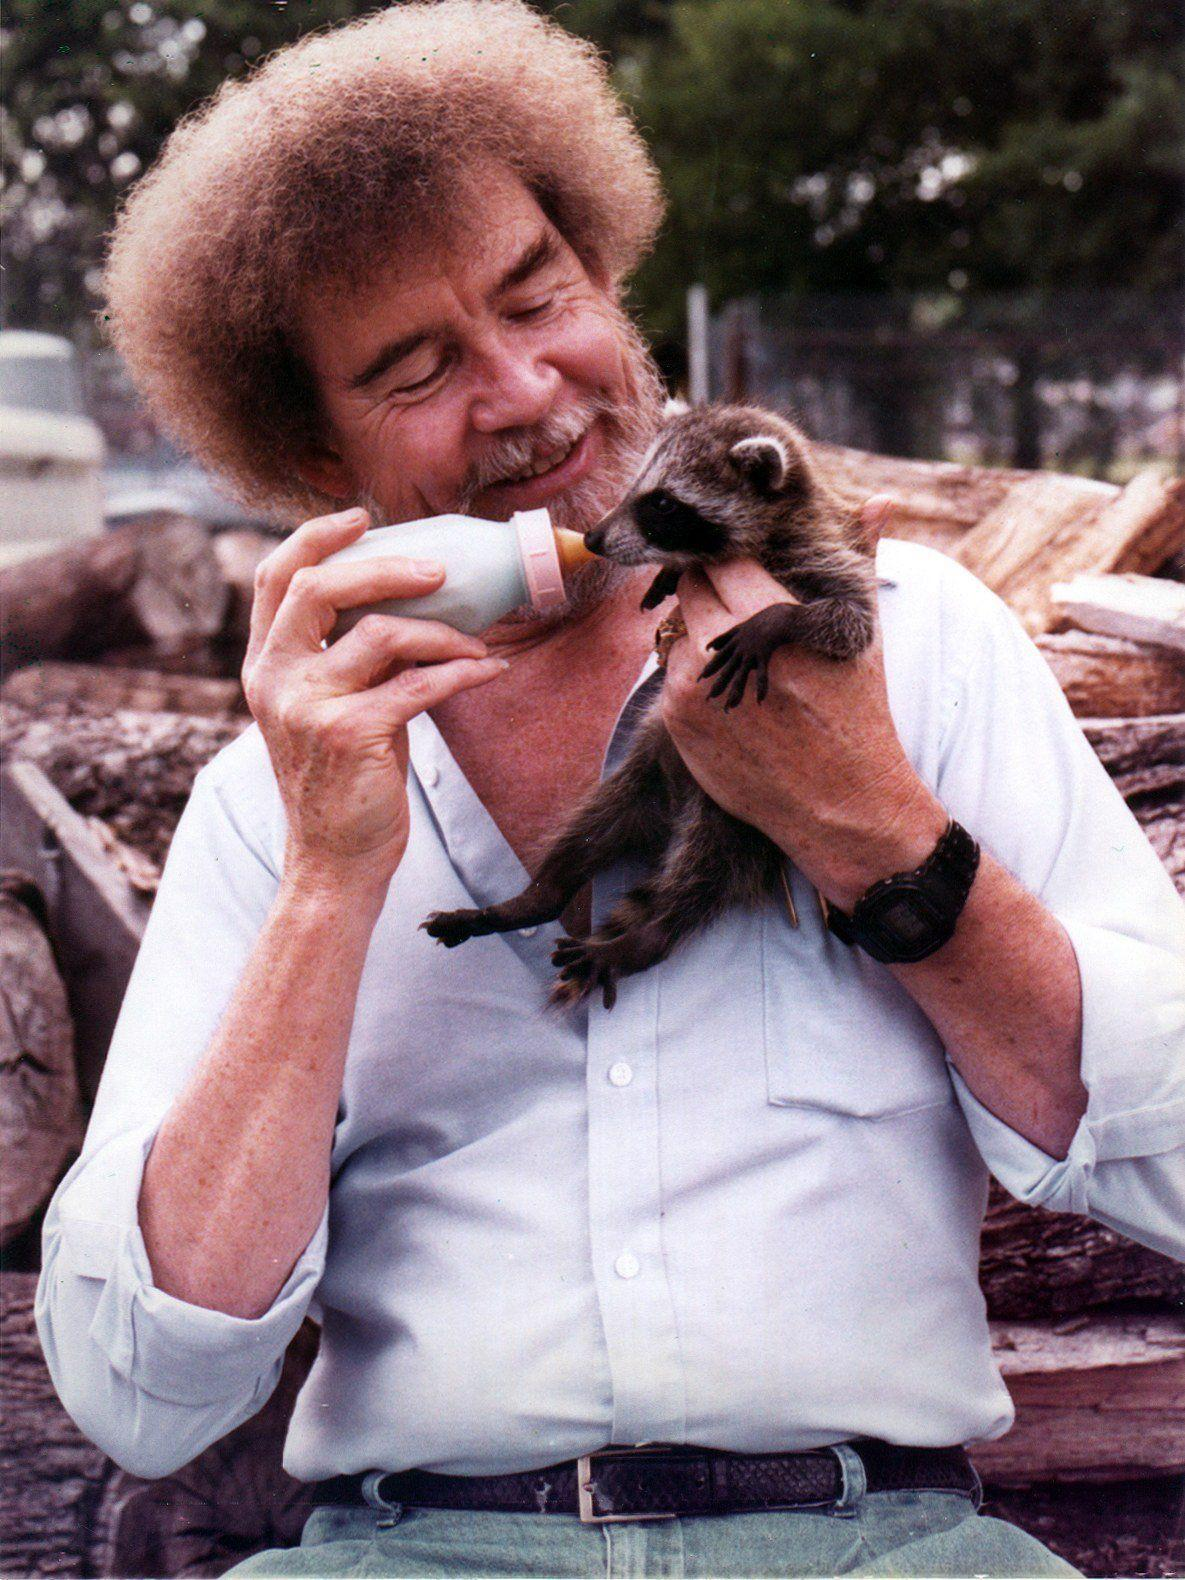 Bob Ross How Did He Die : Today, Birthday., Here's, Picture, Bottle-feeding, Raccoon.